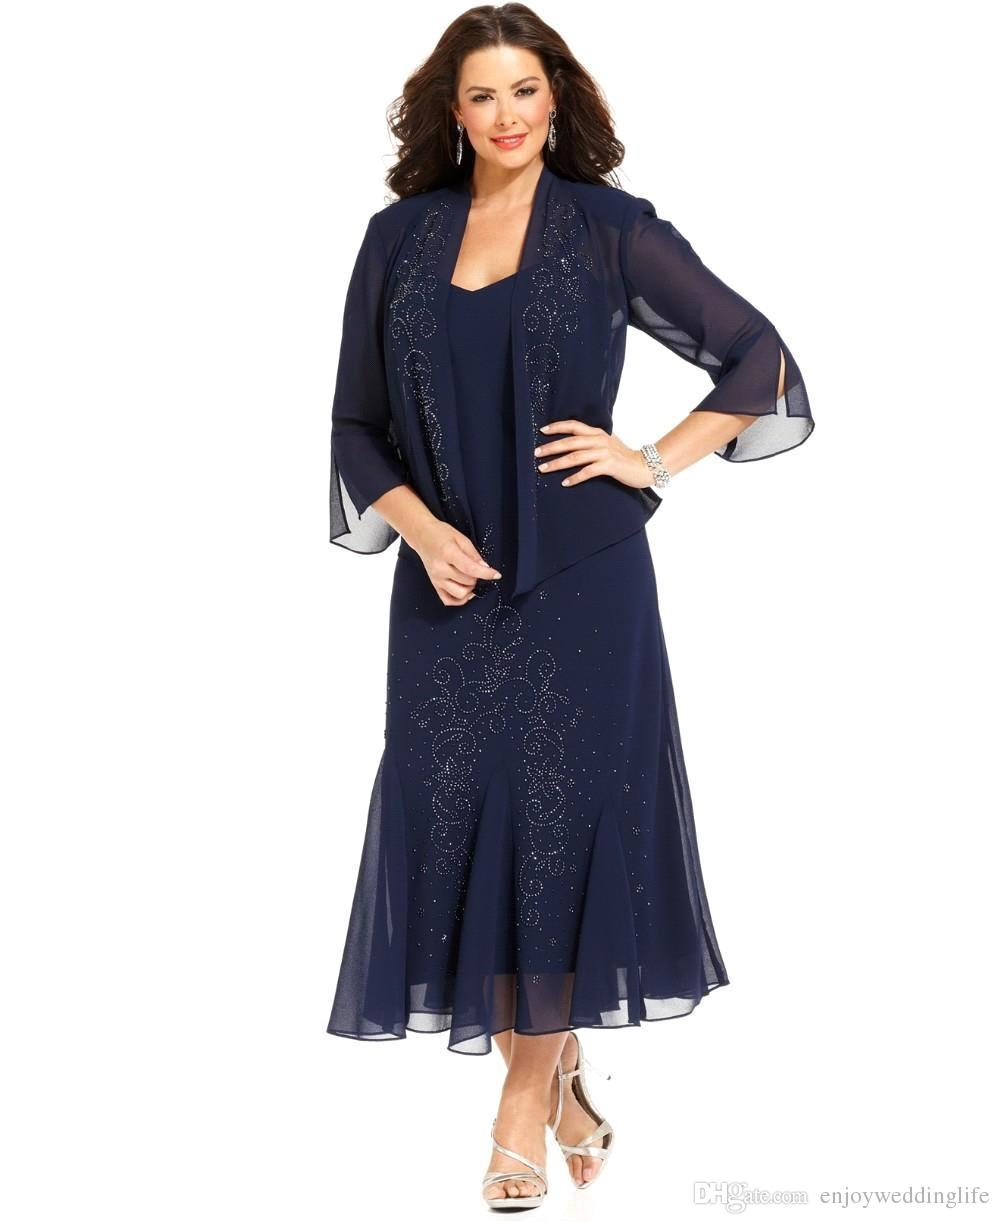 2019 Dark Navy Chiffon Tea Length Mother Of The Bride Dresses With Jacket  Long Sleeves Vestidos Mother Plus Size Formal Wear Ba3573 Von Maur Mother  Of ...